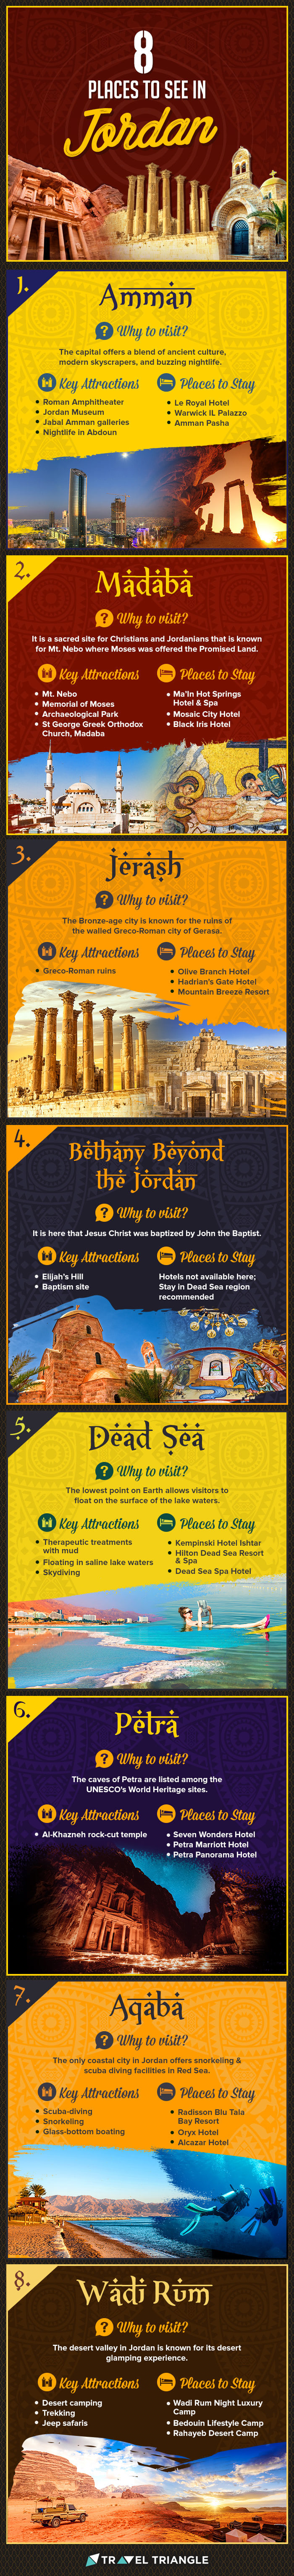 An infographic of the best places to see in Jordan